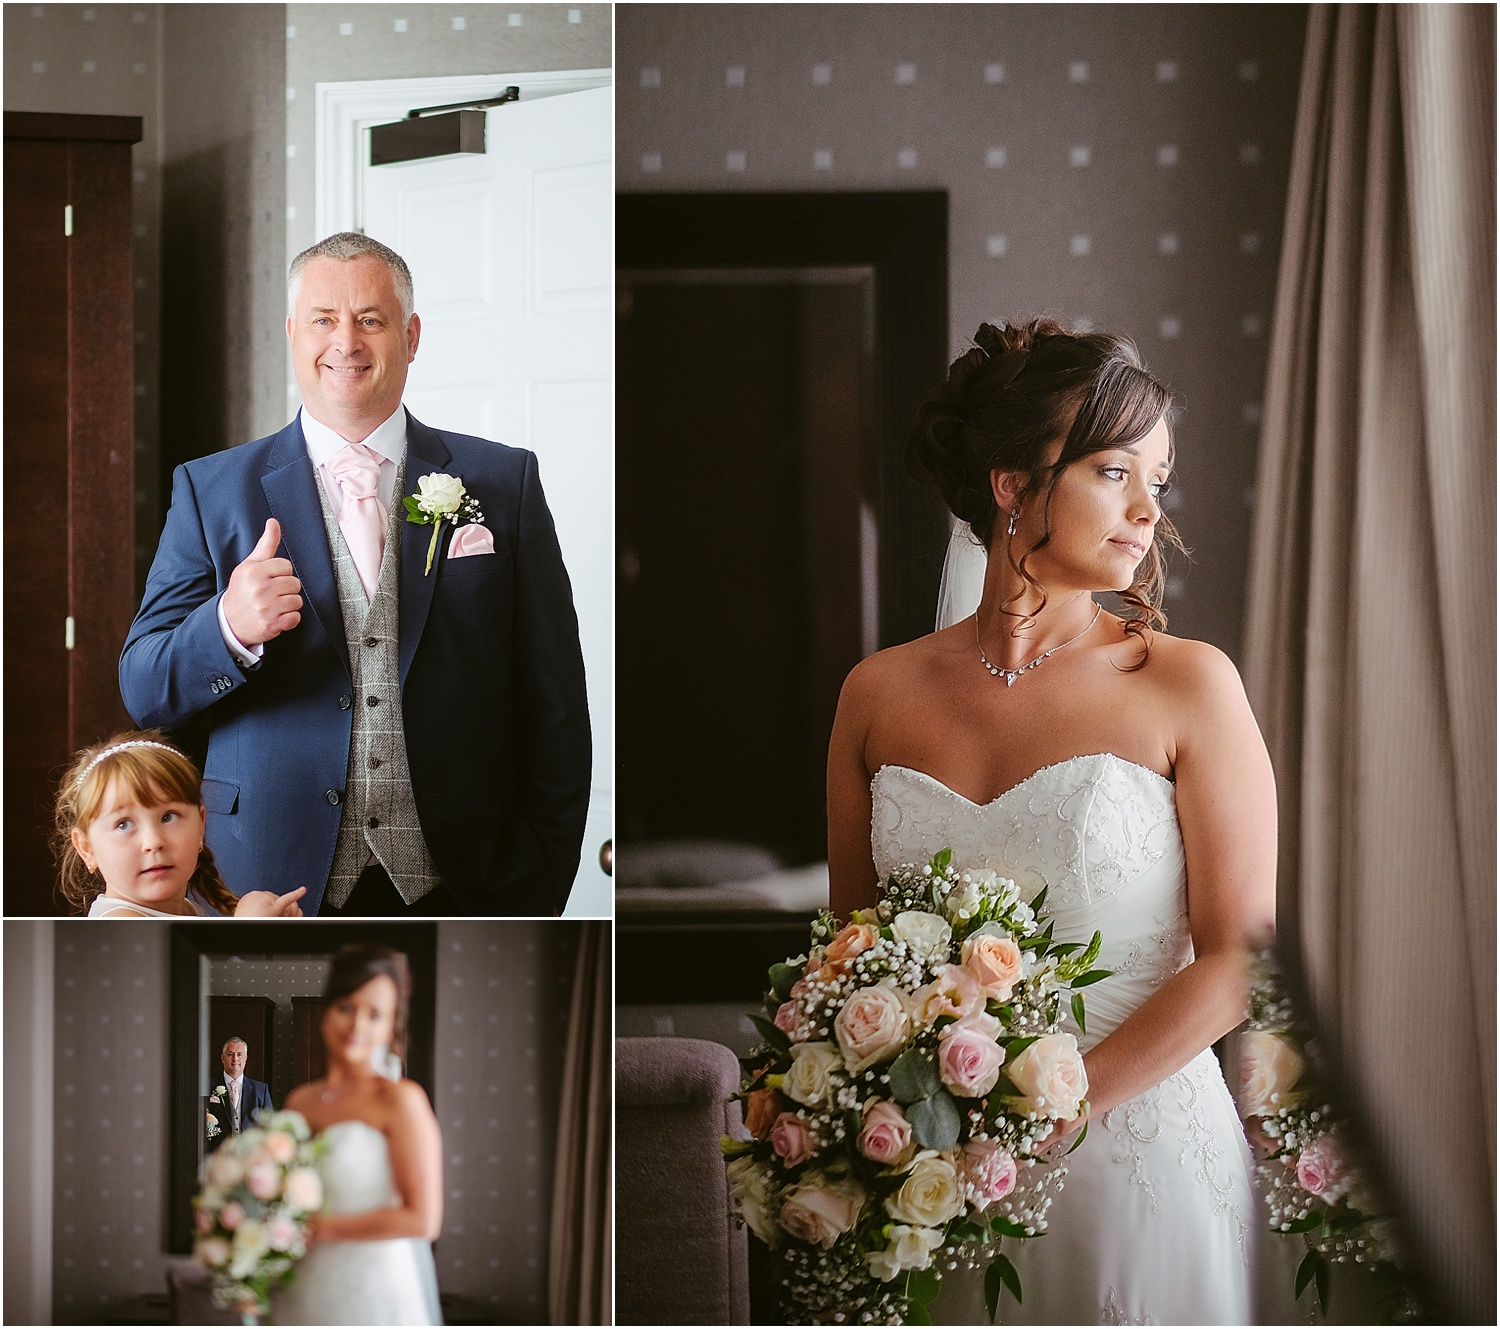 Wedding at Seaham Hall - wedding photography by www.2tonephotography.co.uk 018.jpg